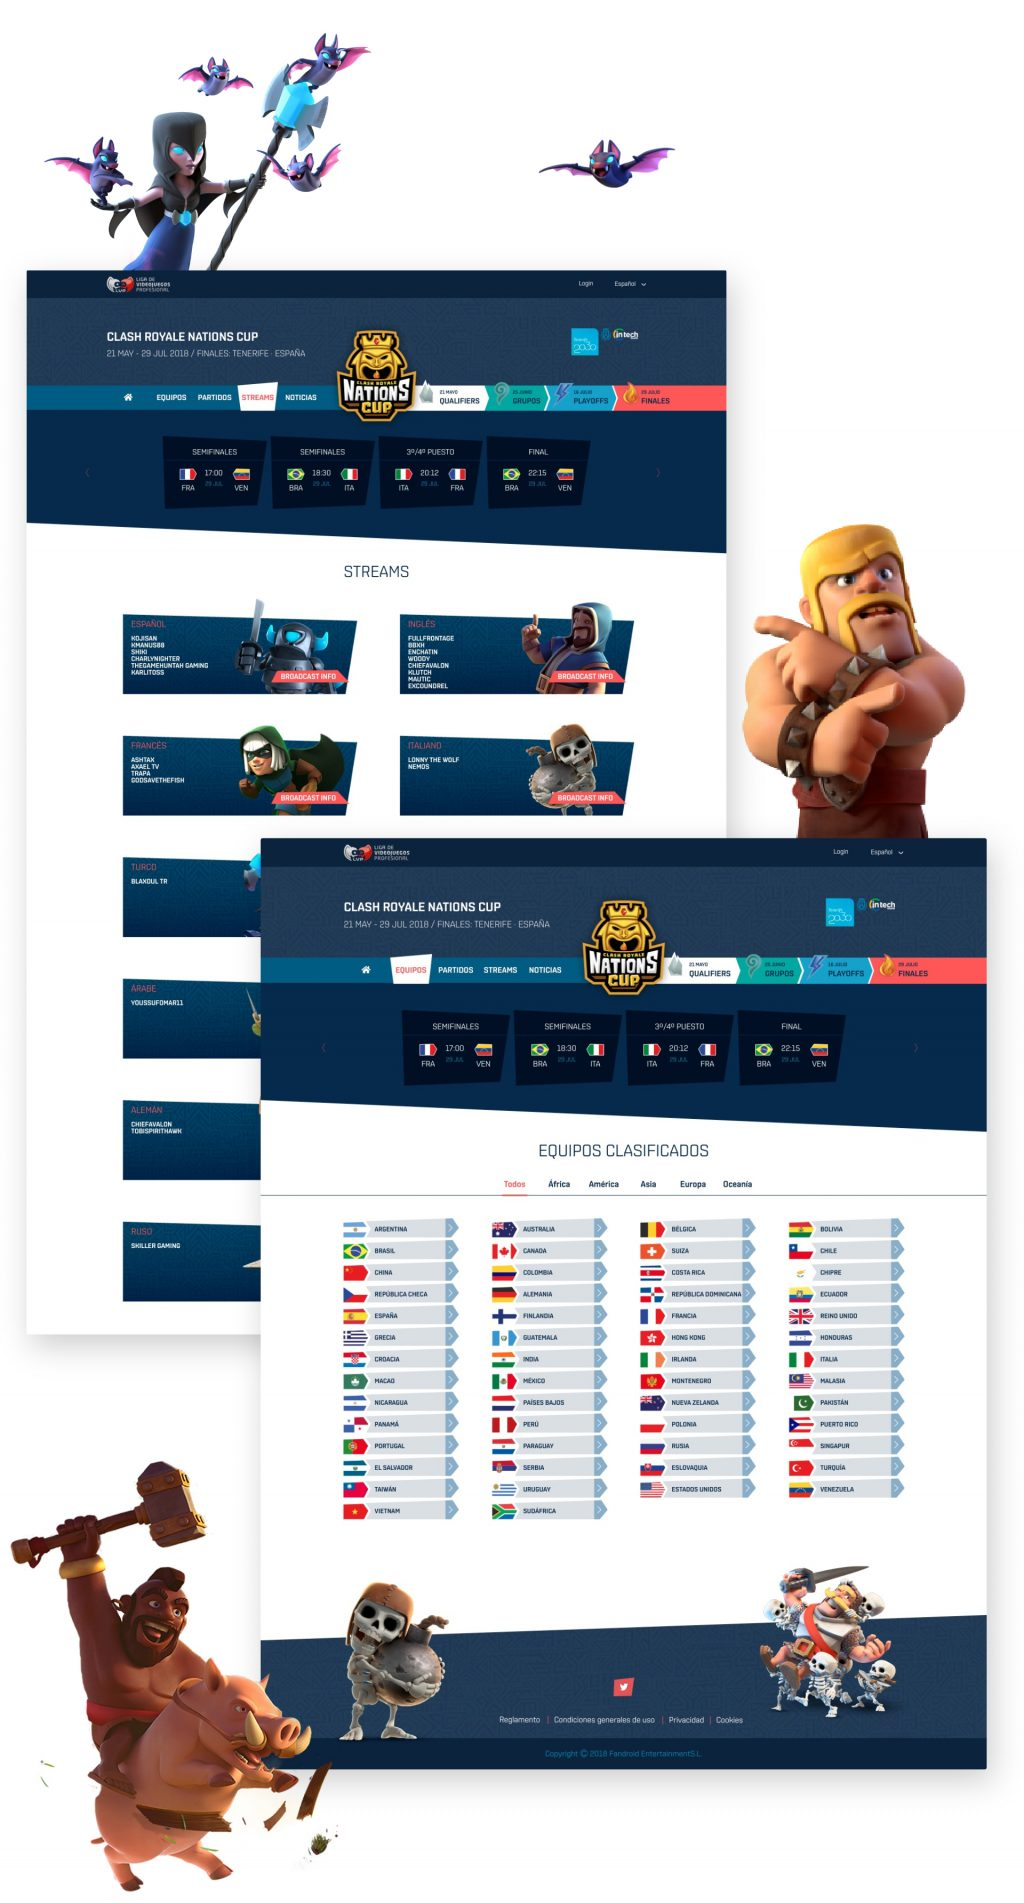 Clash Royal Nations Cup